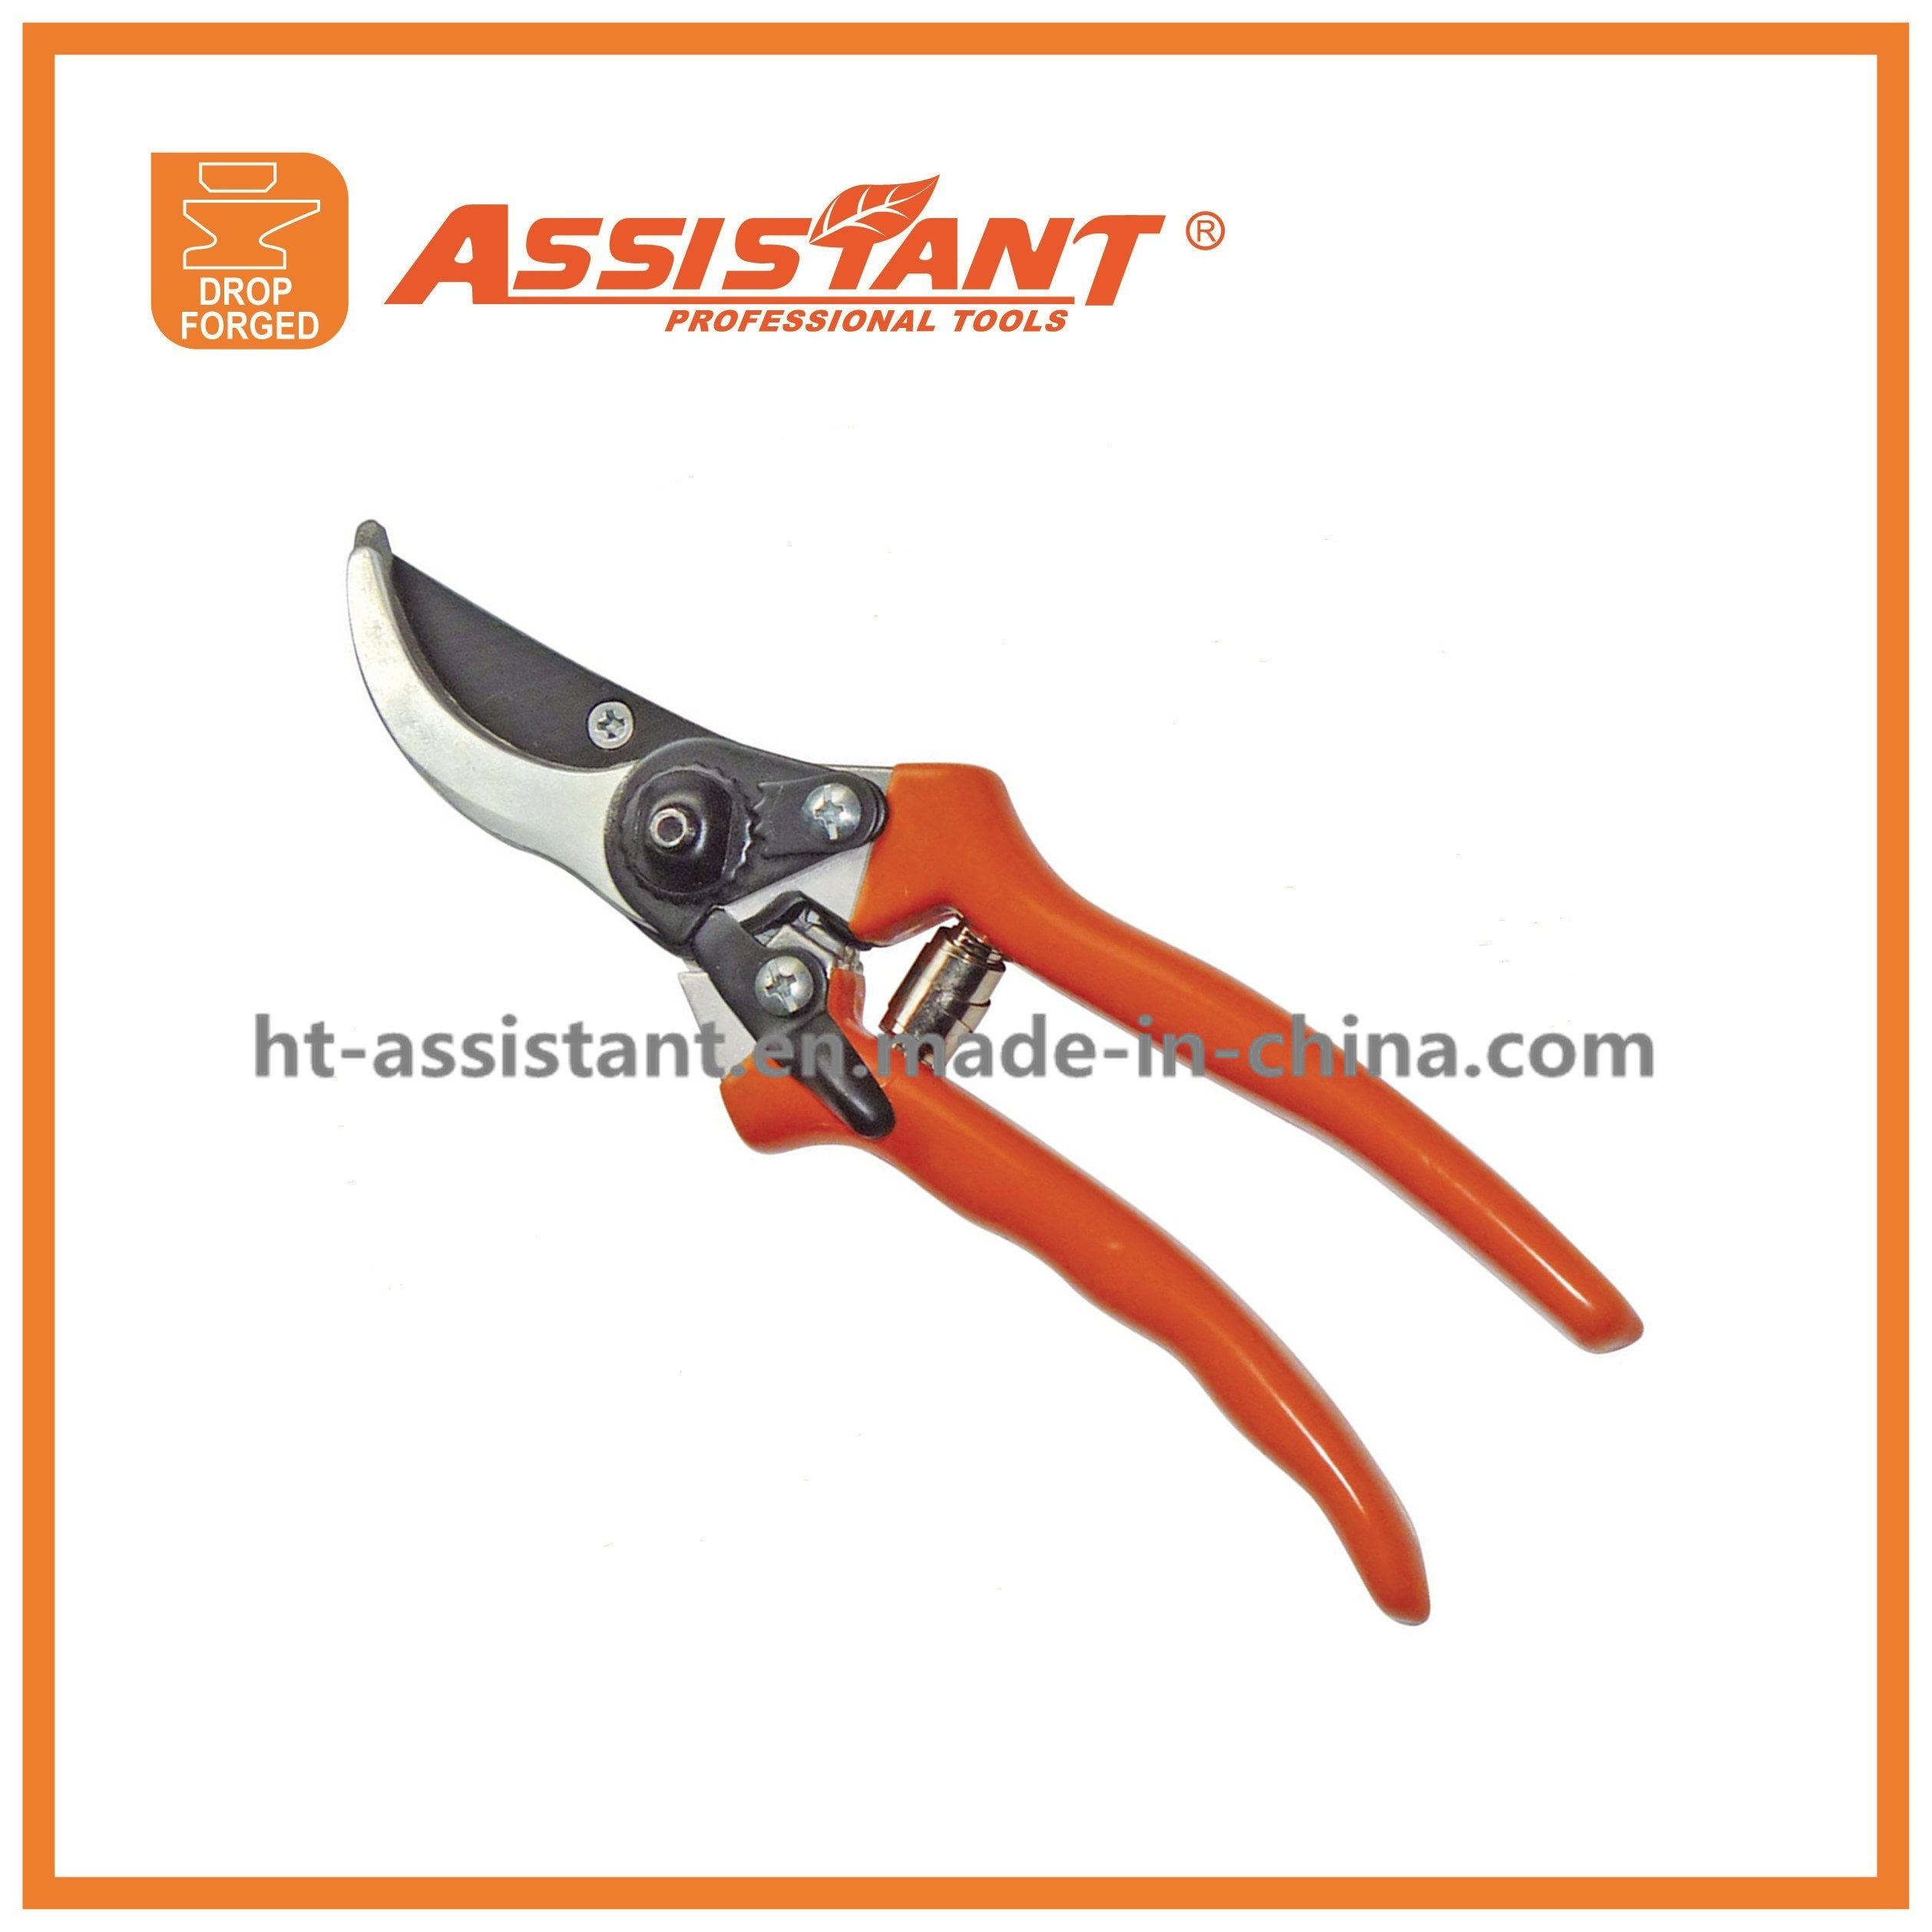 Rose Secateurs Drop Forged Aluminum Handles Bypass Pruning Shears